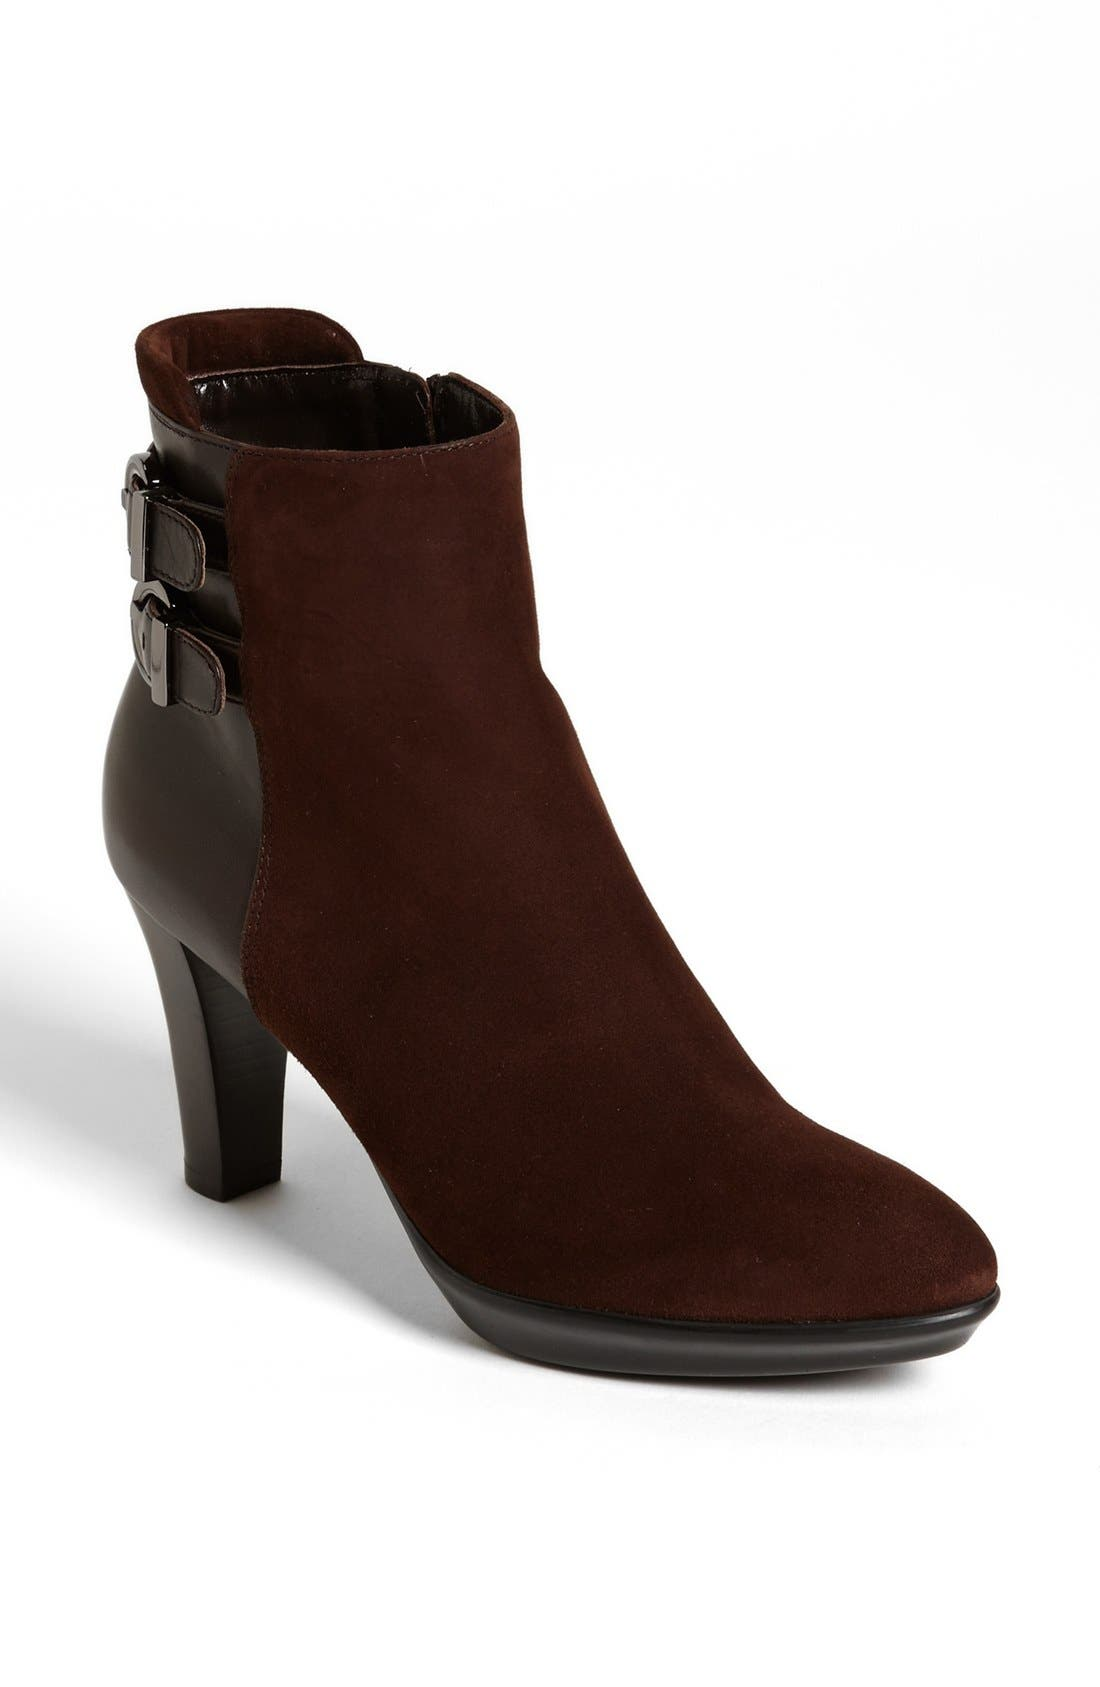 Alternate Image 1 Selected - Aquatalia by Marvin K 'Roma' Weatherproof Suede & Leather Bootie (Women)